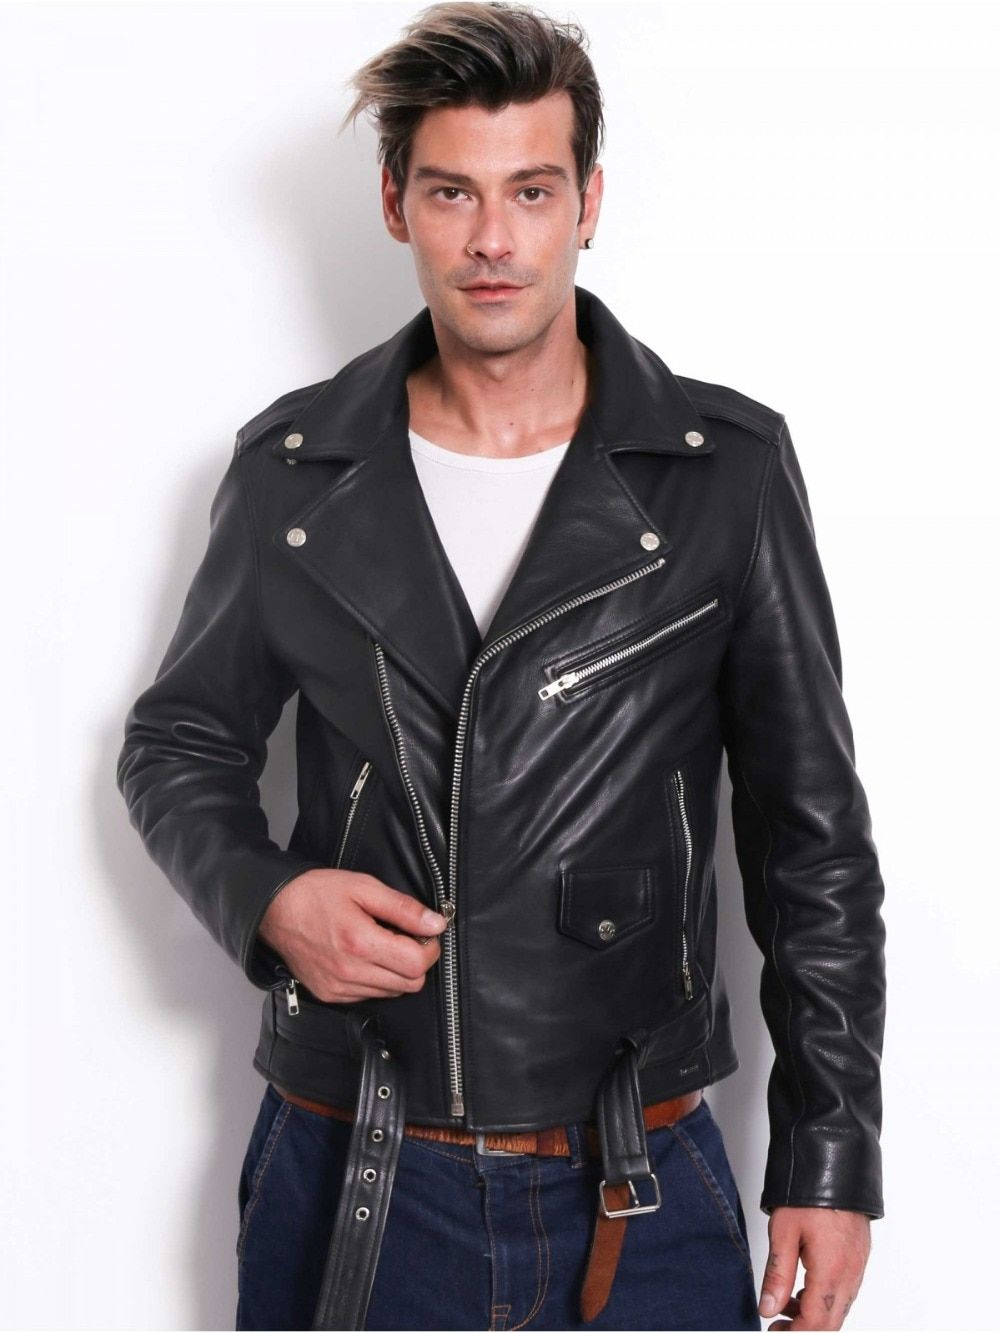 Vainas Brando Mens High Quality Leather Jacket For Men Winter Real Leather Jacket Motorcycle Jackets Bike Jackets With Images High Quality Leather Jacket Real Leather Jacket Leather Jacket